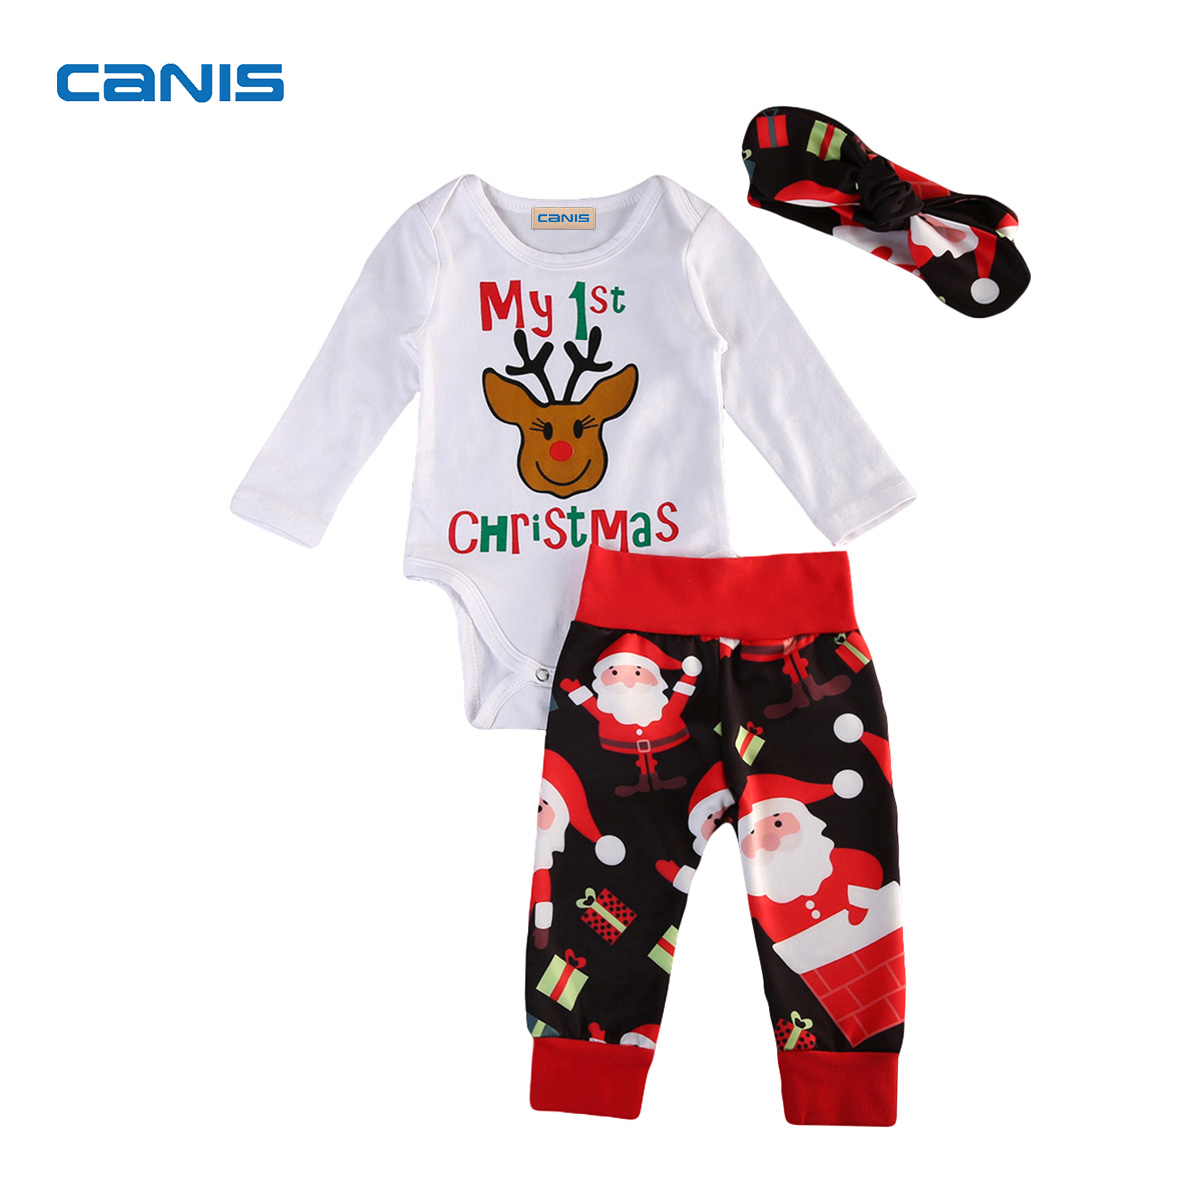 Xmas Newborn Infant Baby Girls Boys Clothes Deer Romper Tops Santa Claus Long Pants Toddler Baby First Christmas Outfits Set 0 24m newborn infant baby boy girl clothes set romper bodysuit tops rainbow long pants hat 3pcs toddler winter fall outfits